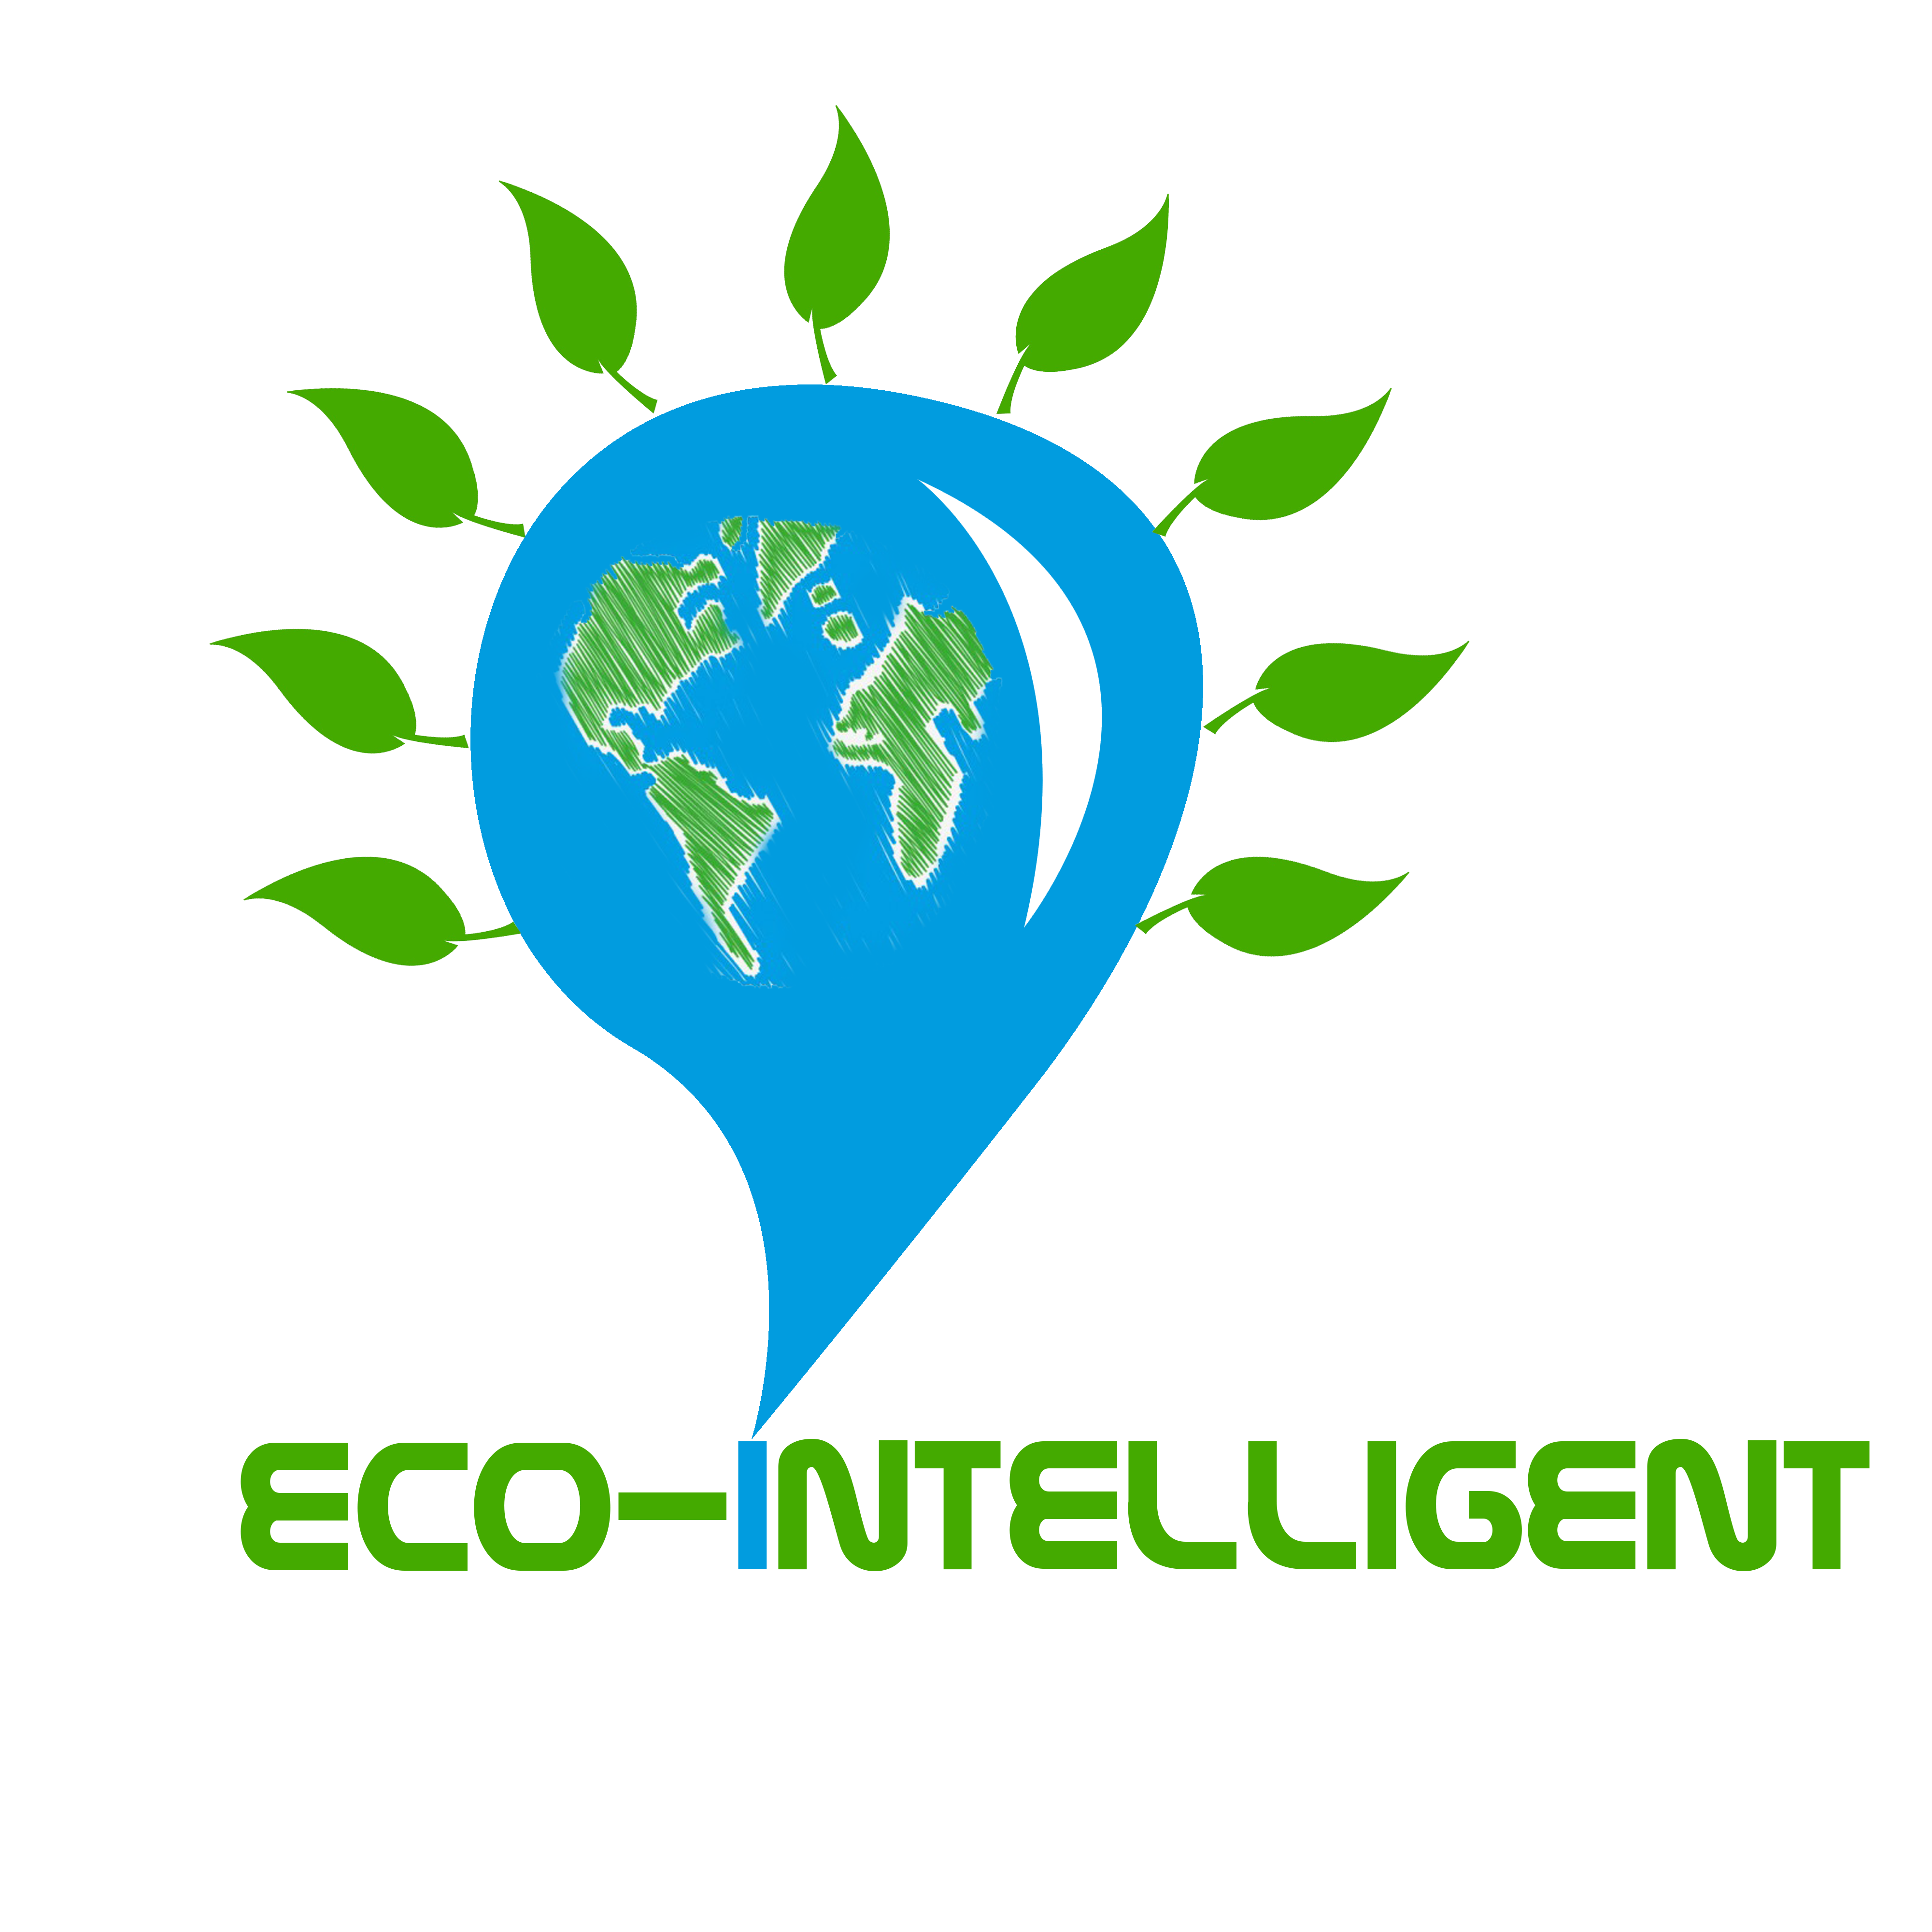 Eco-intelligent